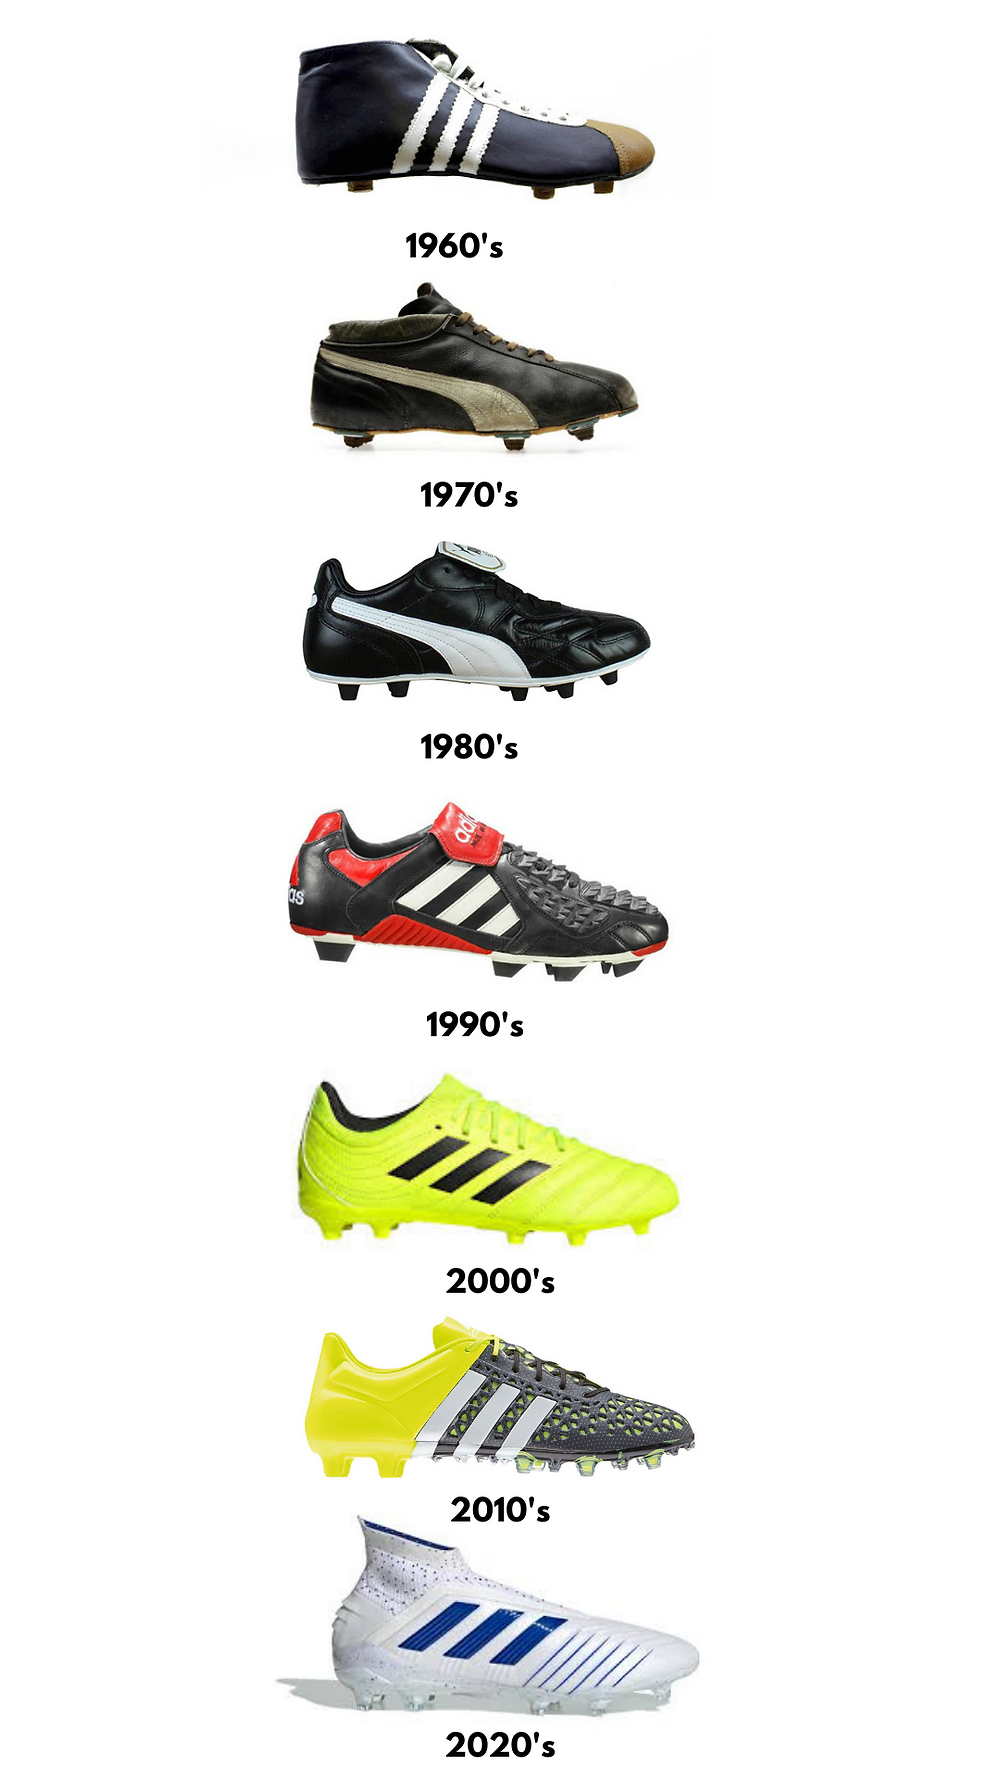 History Of Football Boots 1960-2020